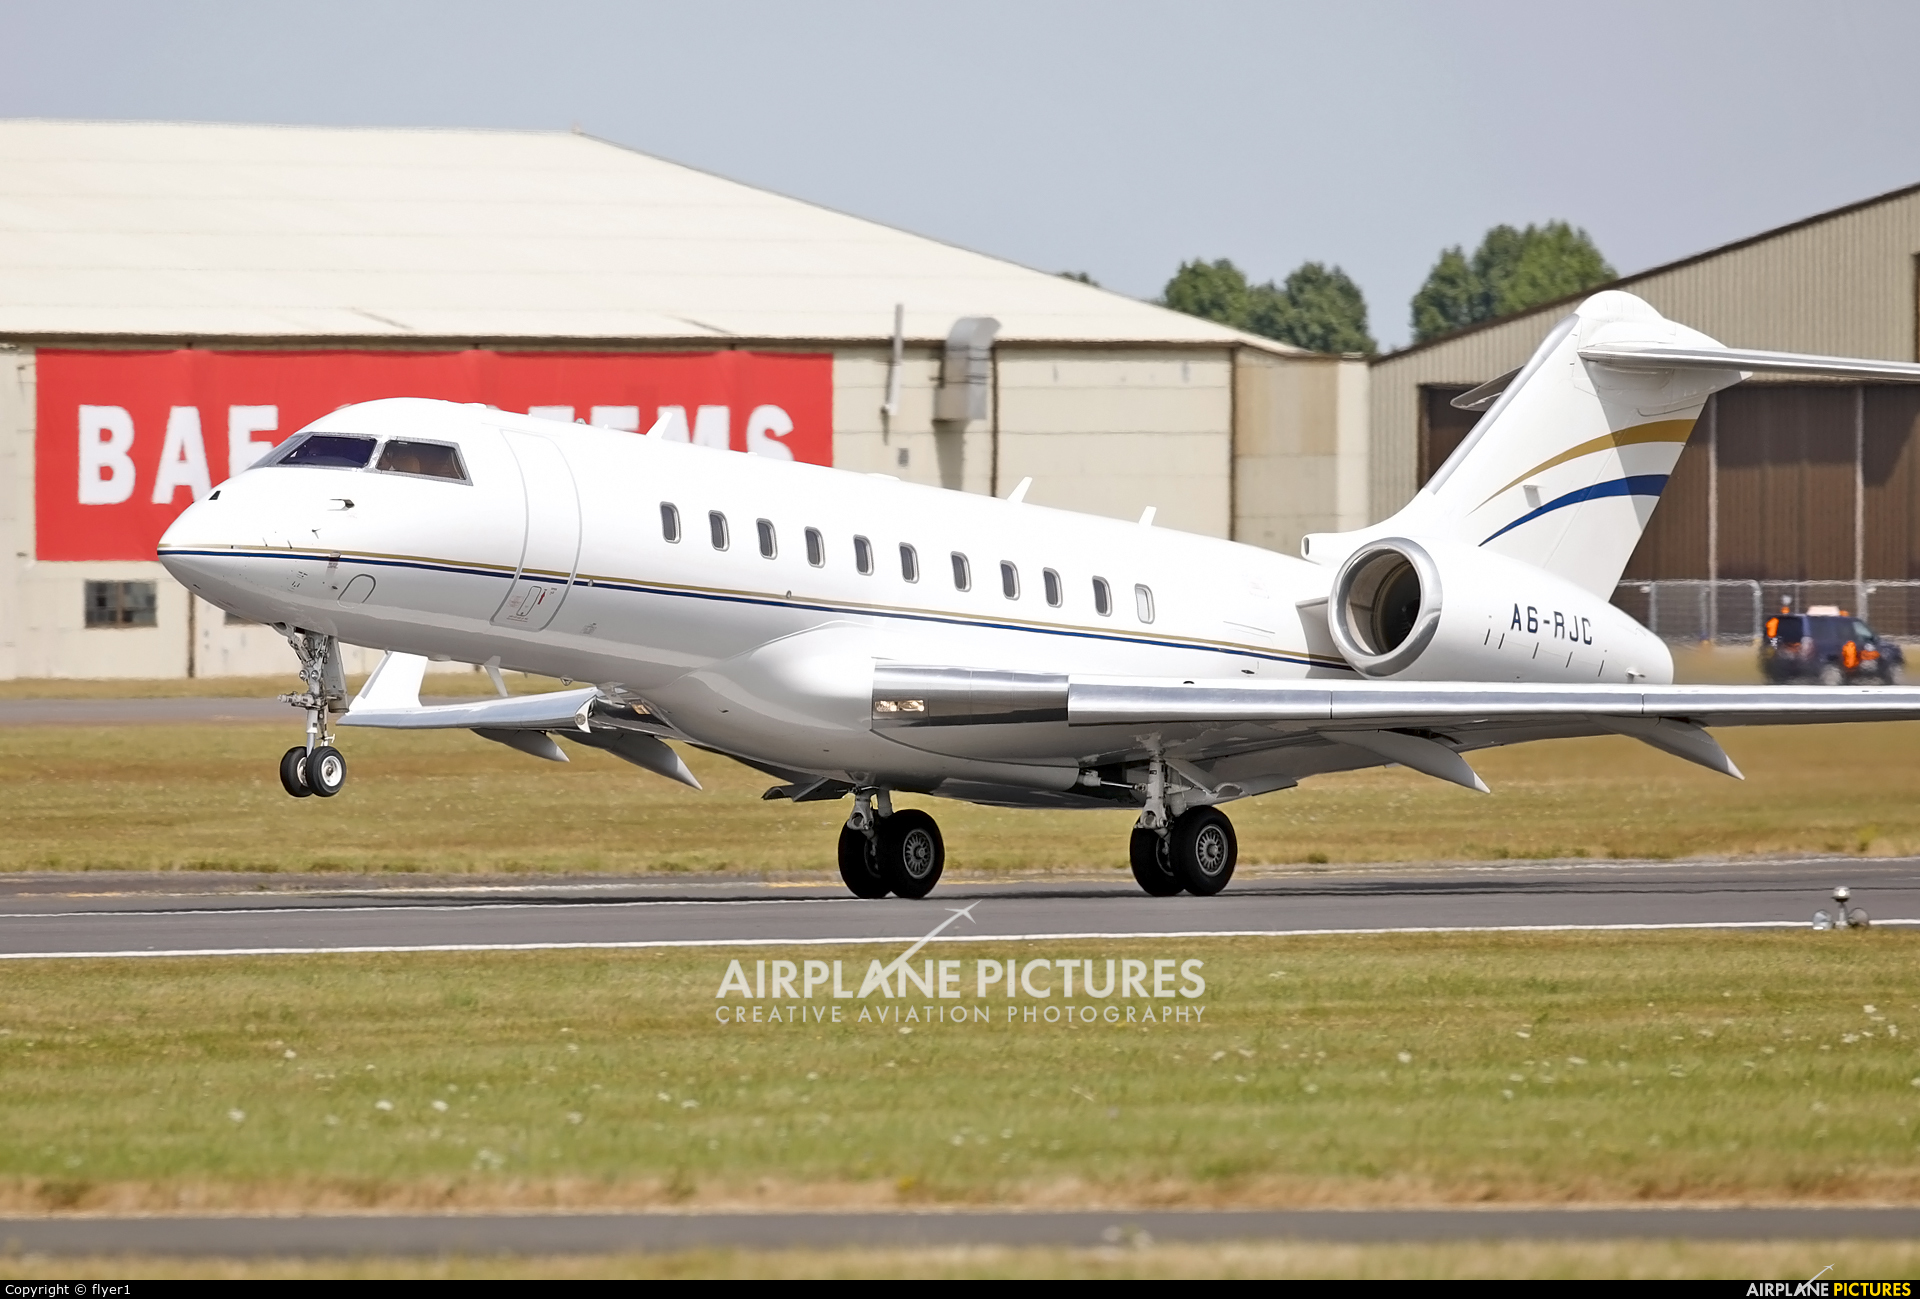 A6-RJC - Royal Jet Bombardier BD-700 Global 6000 at Fairford | Photo ...